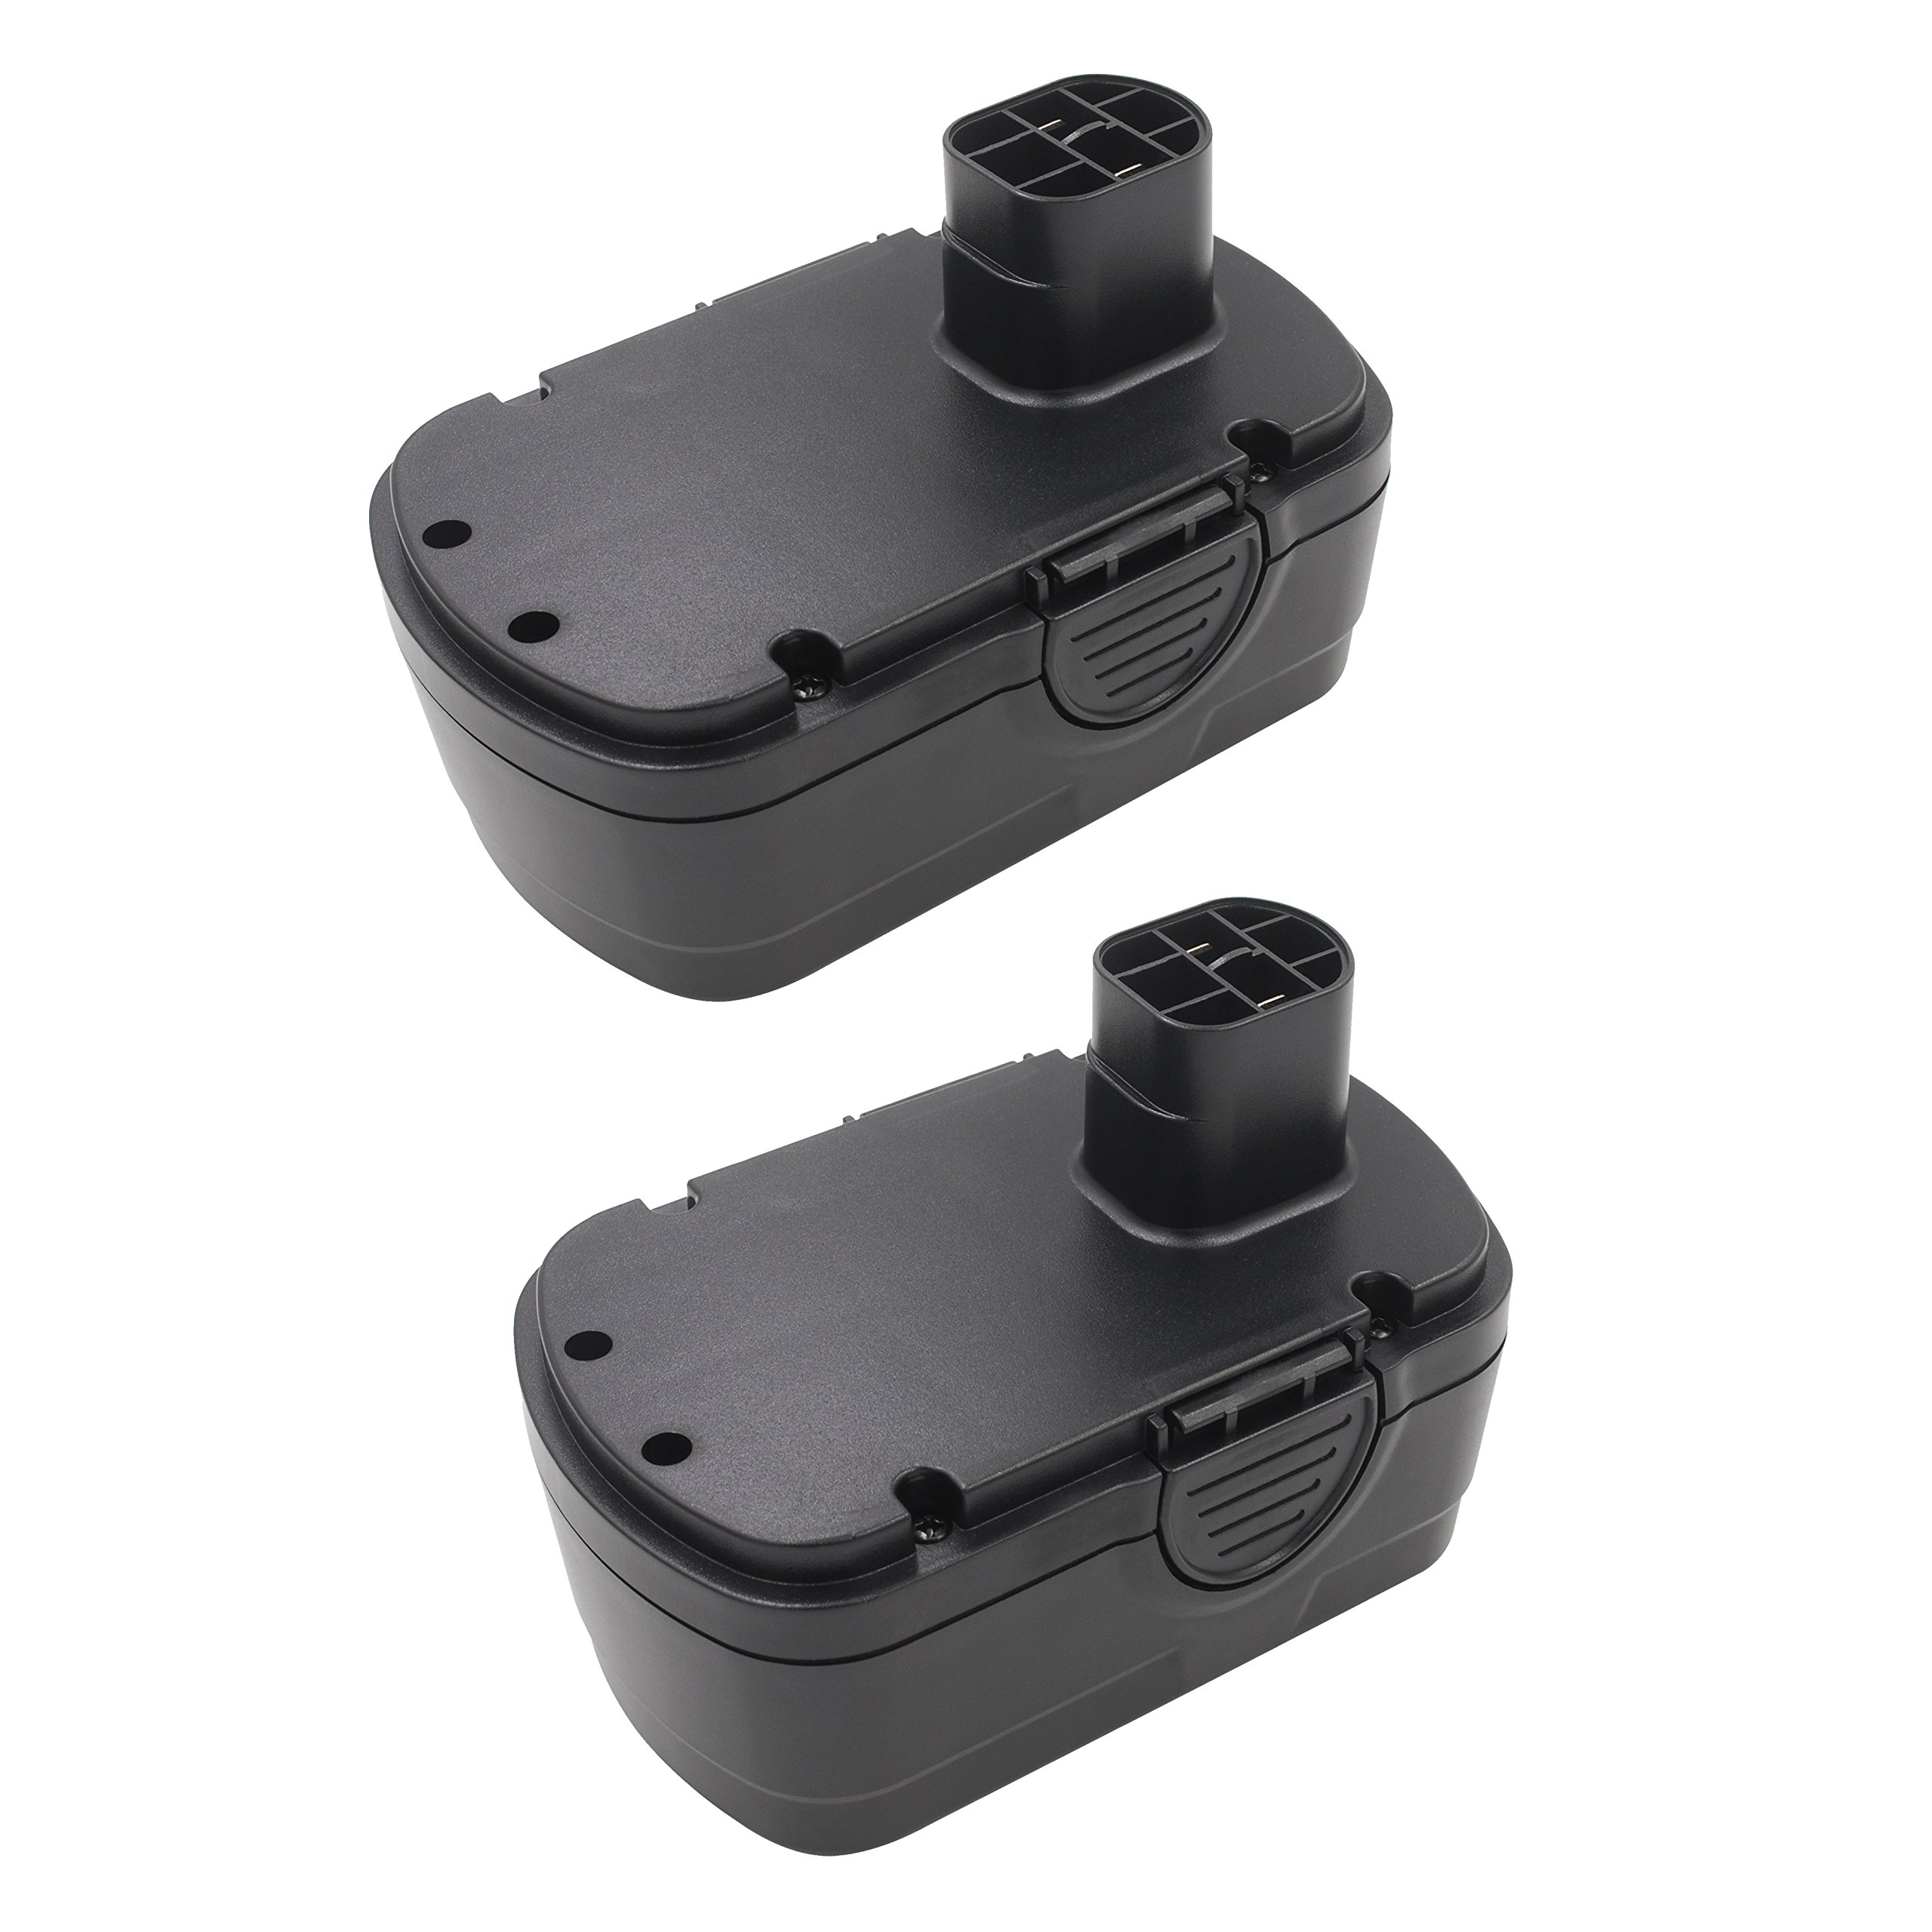 Bonacell 2 Pack 18V 2000mAh Ni-Cd Replacement Earthwise BP91001 Battery for Earthwise Models CPS40008, CST00012, CHT10122 and CB20018